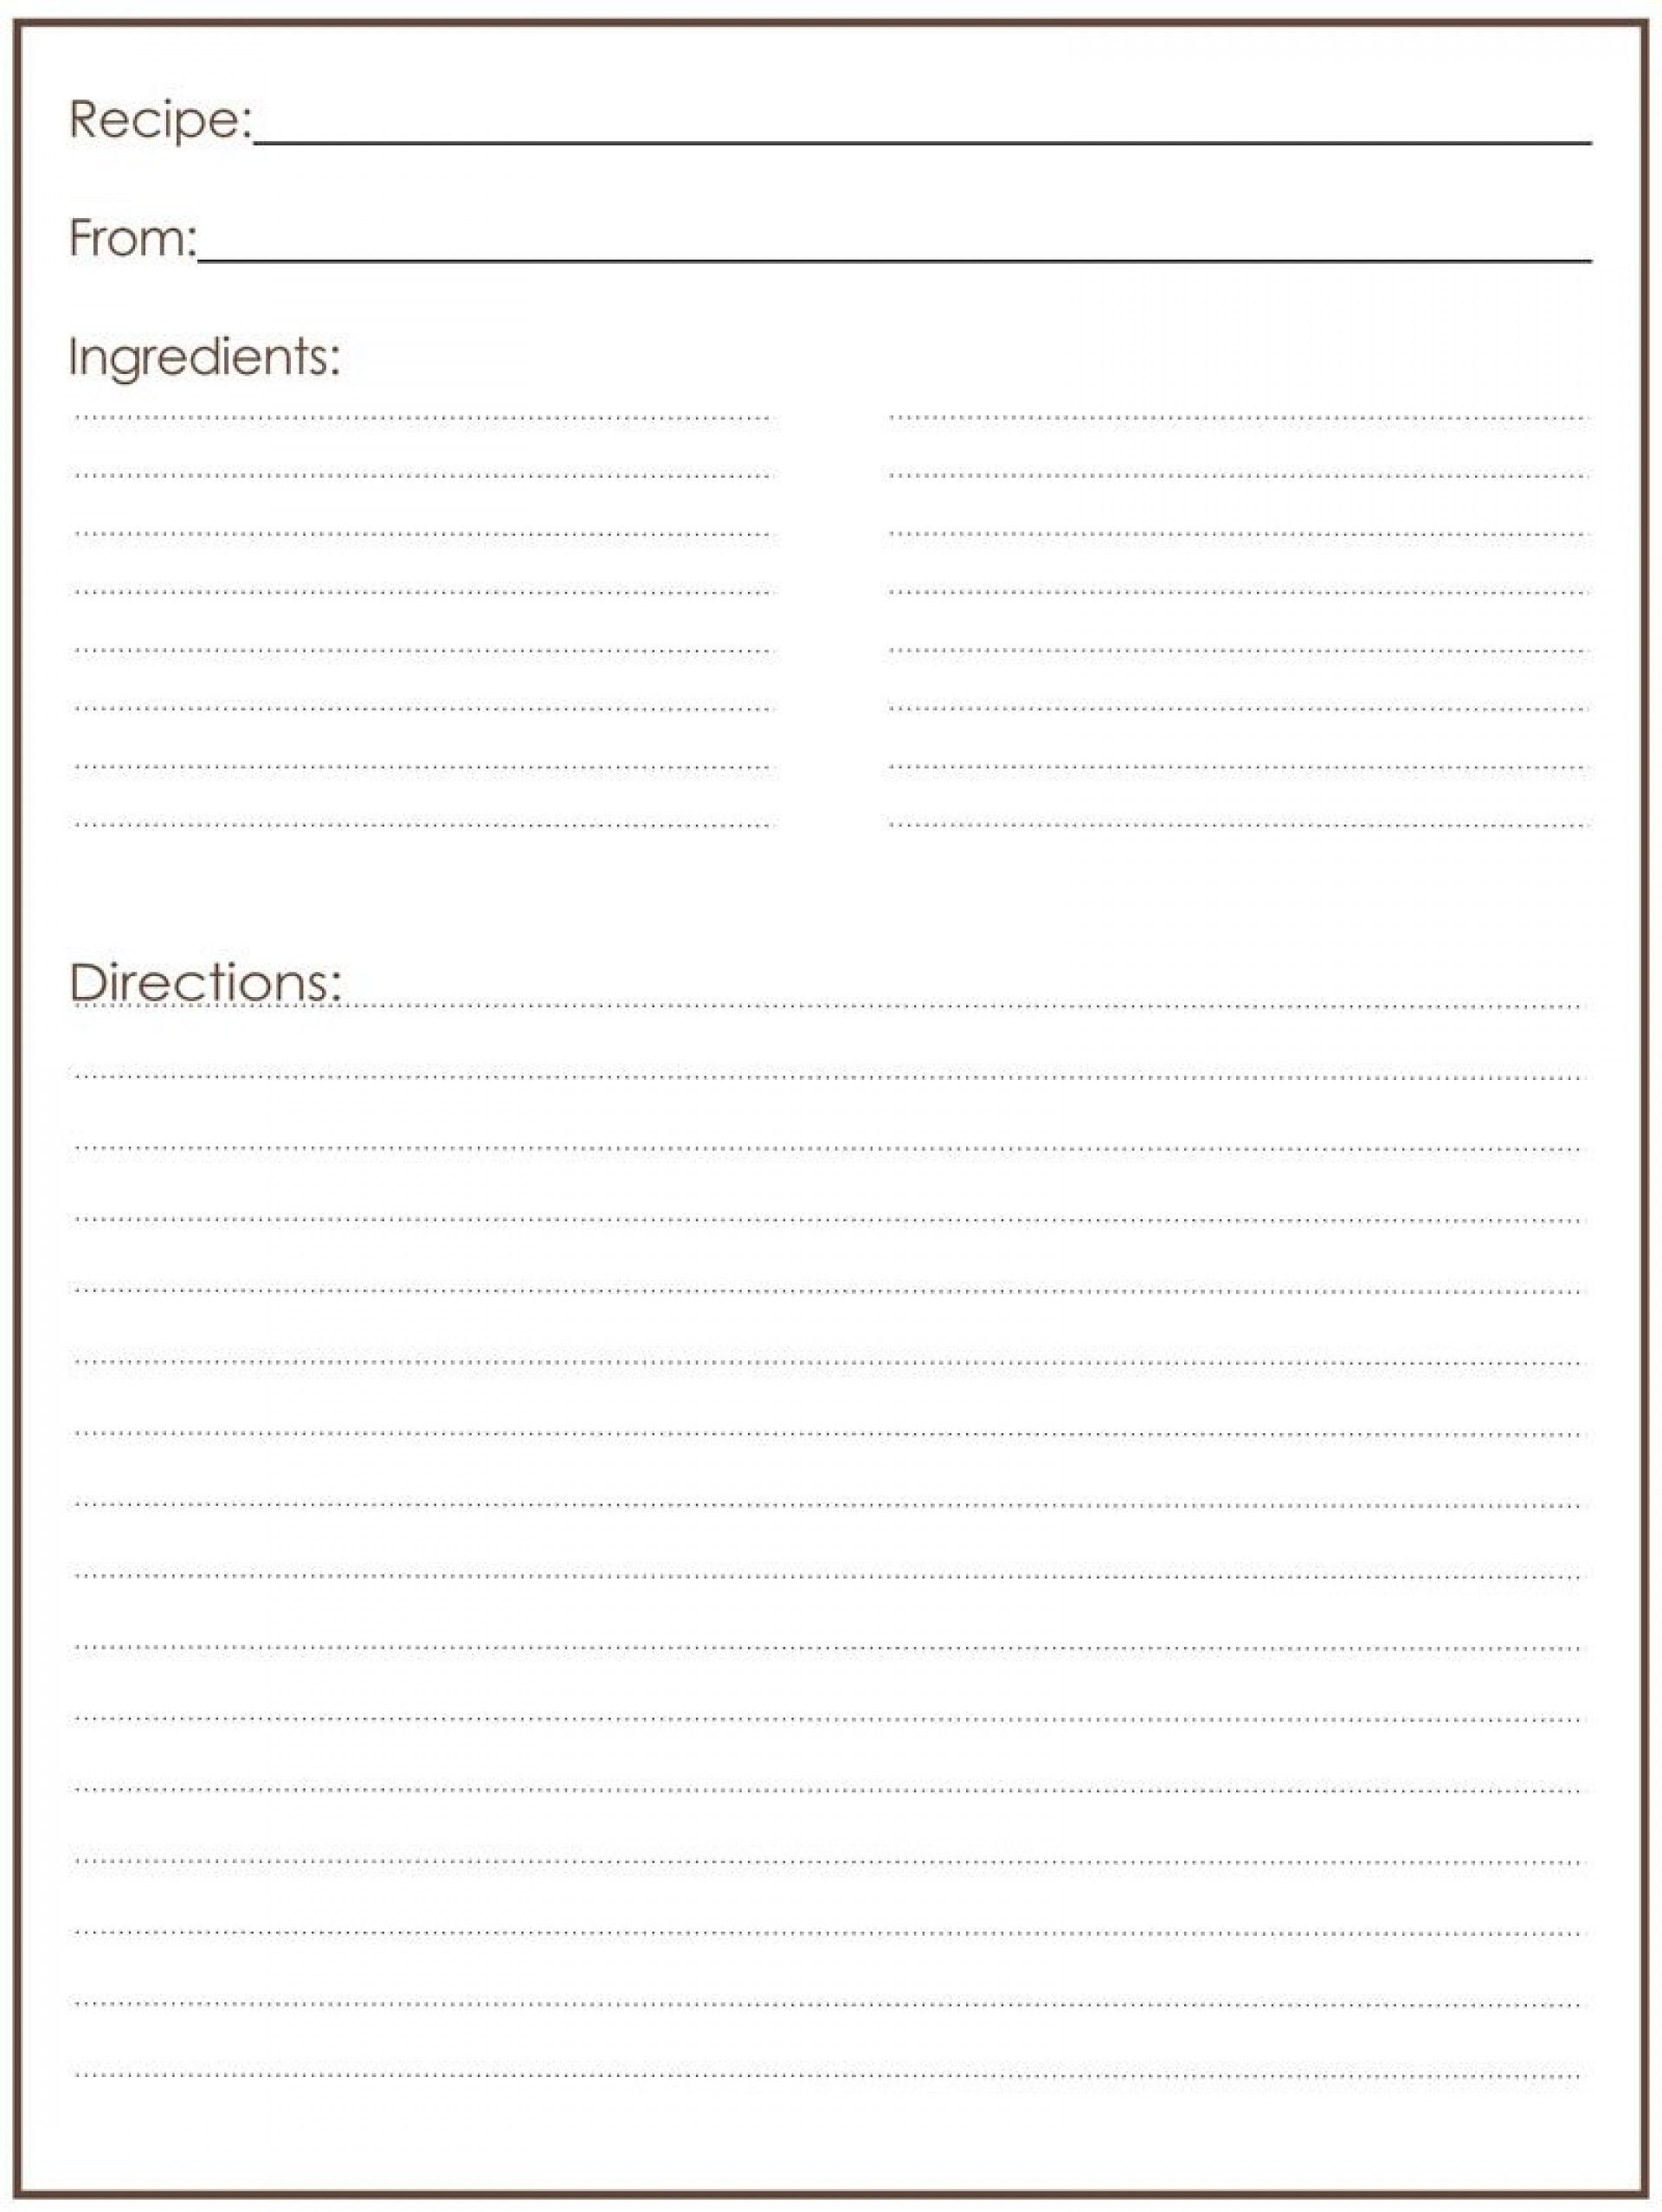 Free Editable Recipe Card Templates For Microsoft Word In 2021 Recipe Template For Word Recipe Cards Template Recipe Template